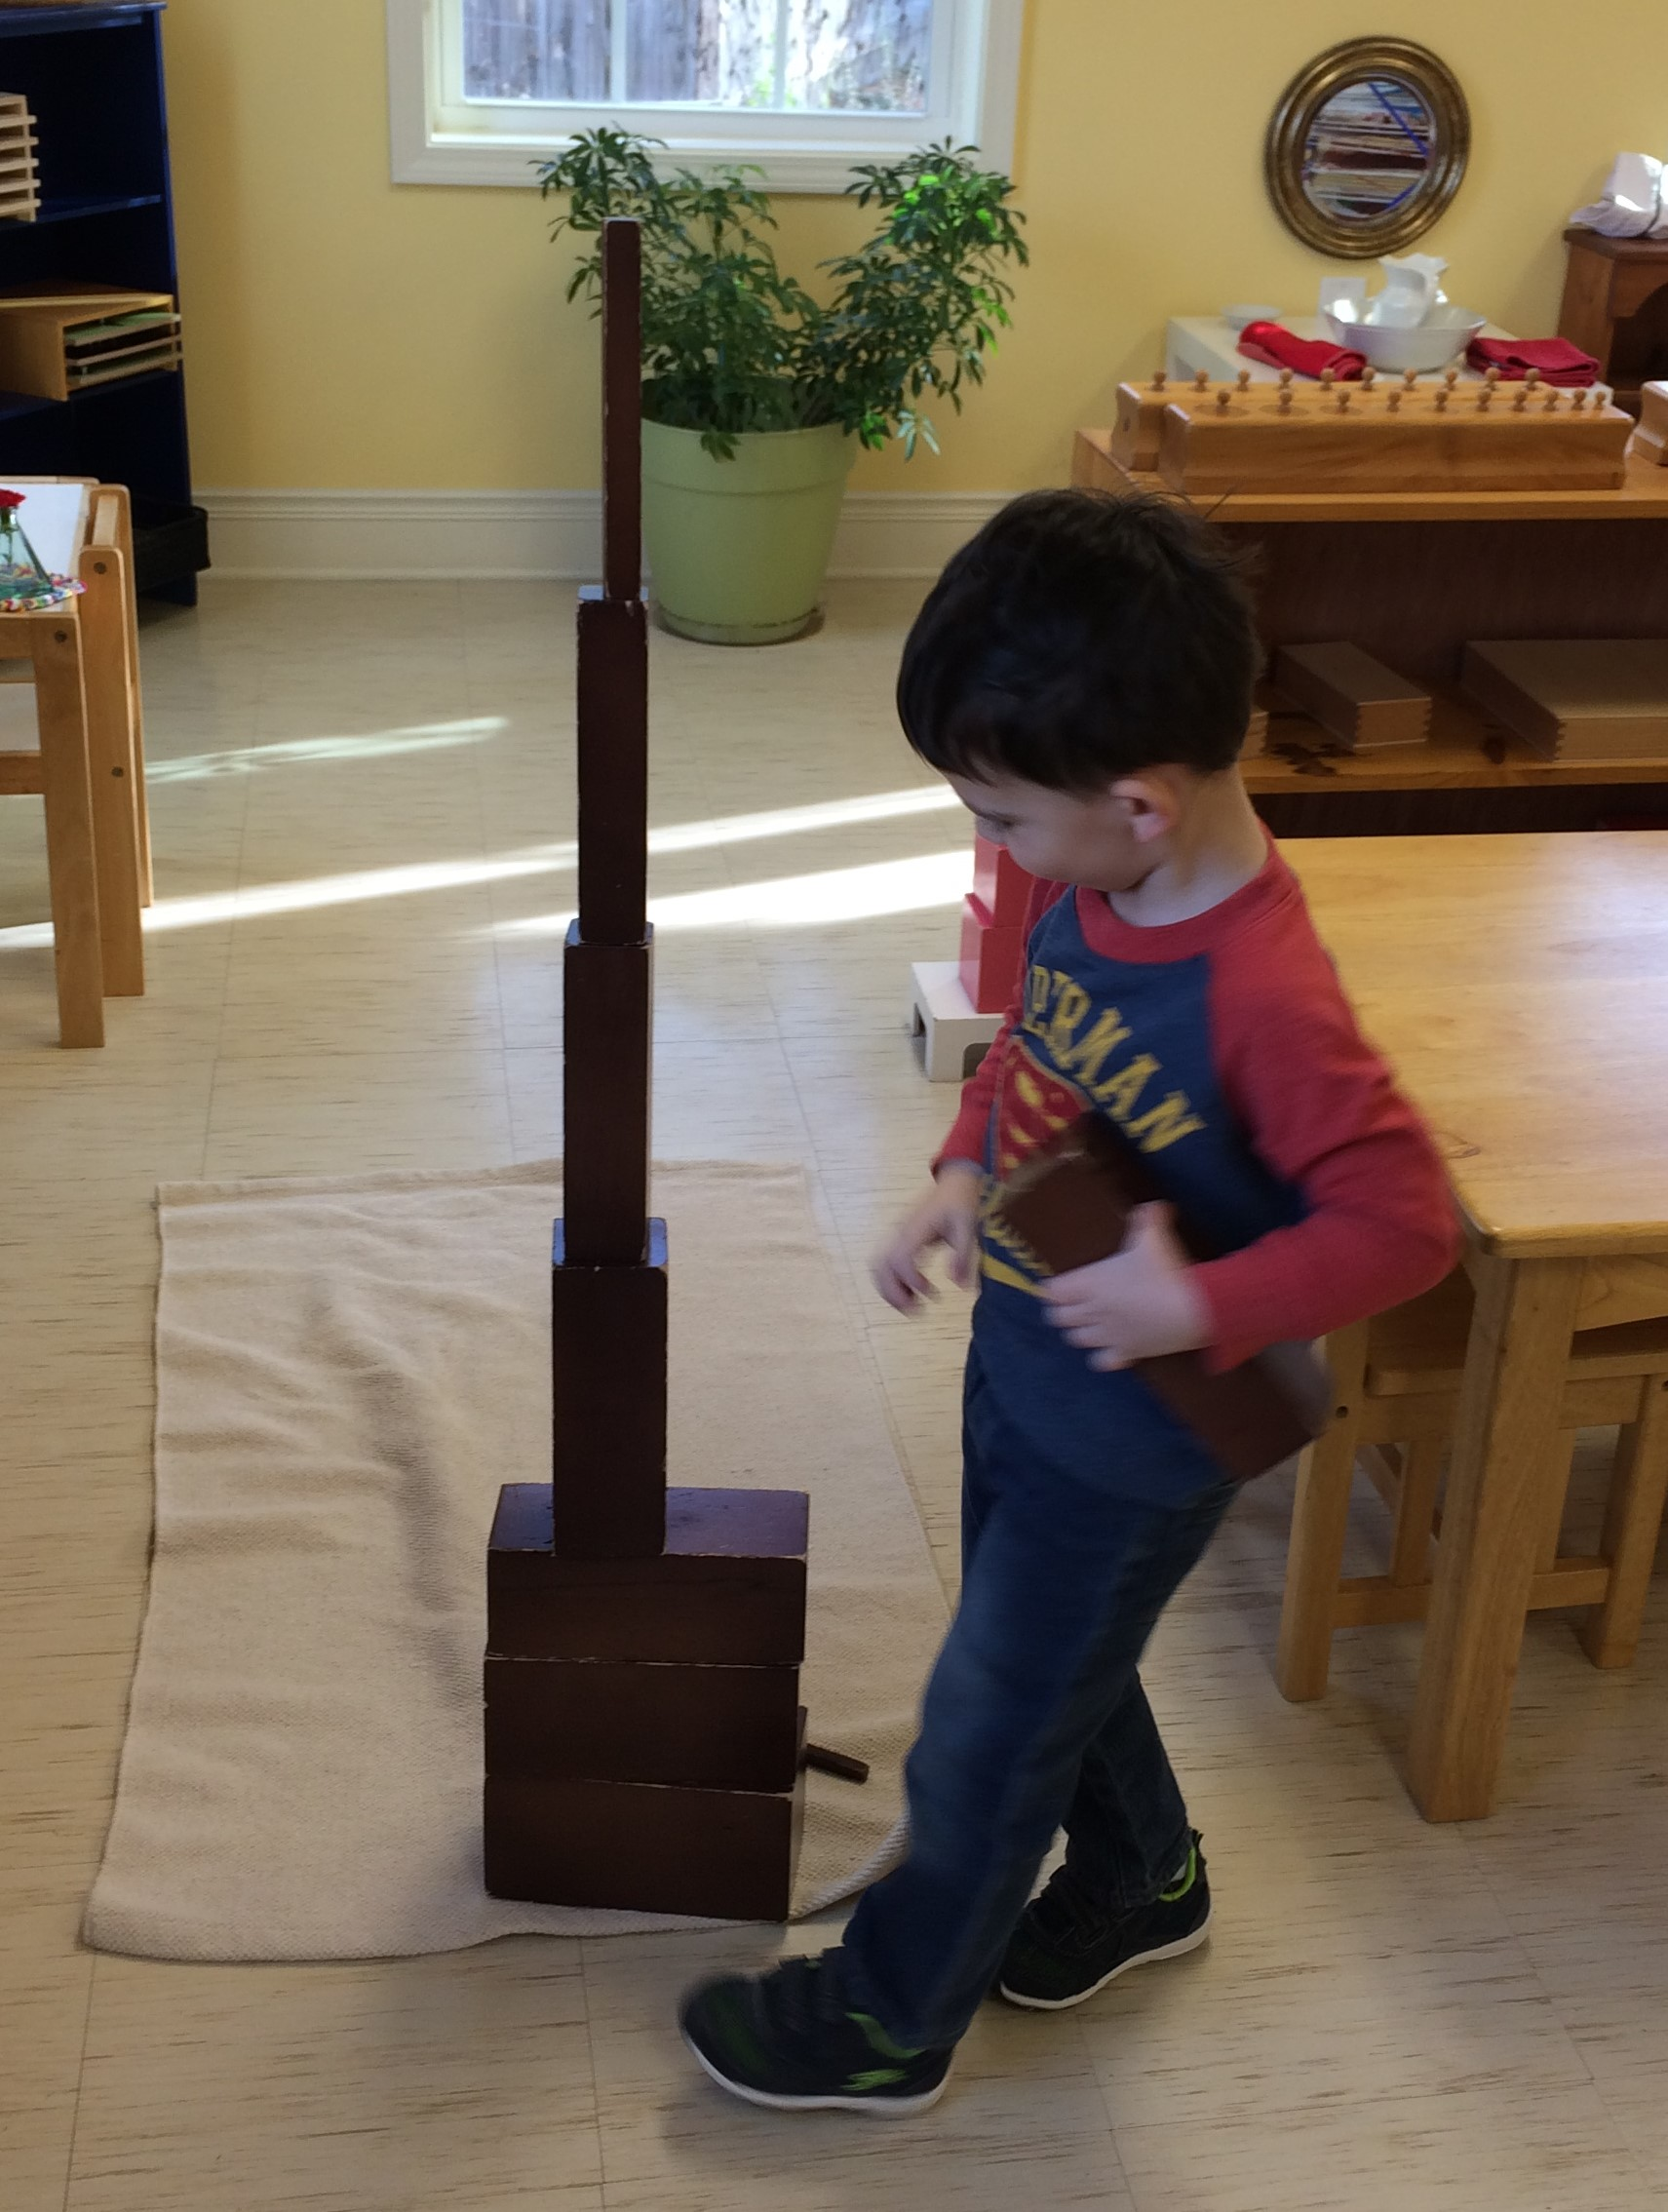 The Brown stairs are part of the Sensorial area of the environment. The first lesson shows the child how to place the rectangular prisms in order based on the breadth of each stair. The child is then left to discover other possibilities of how to place them in order. This child is discovering that they can be built similar to the pink tower.